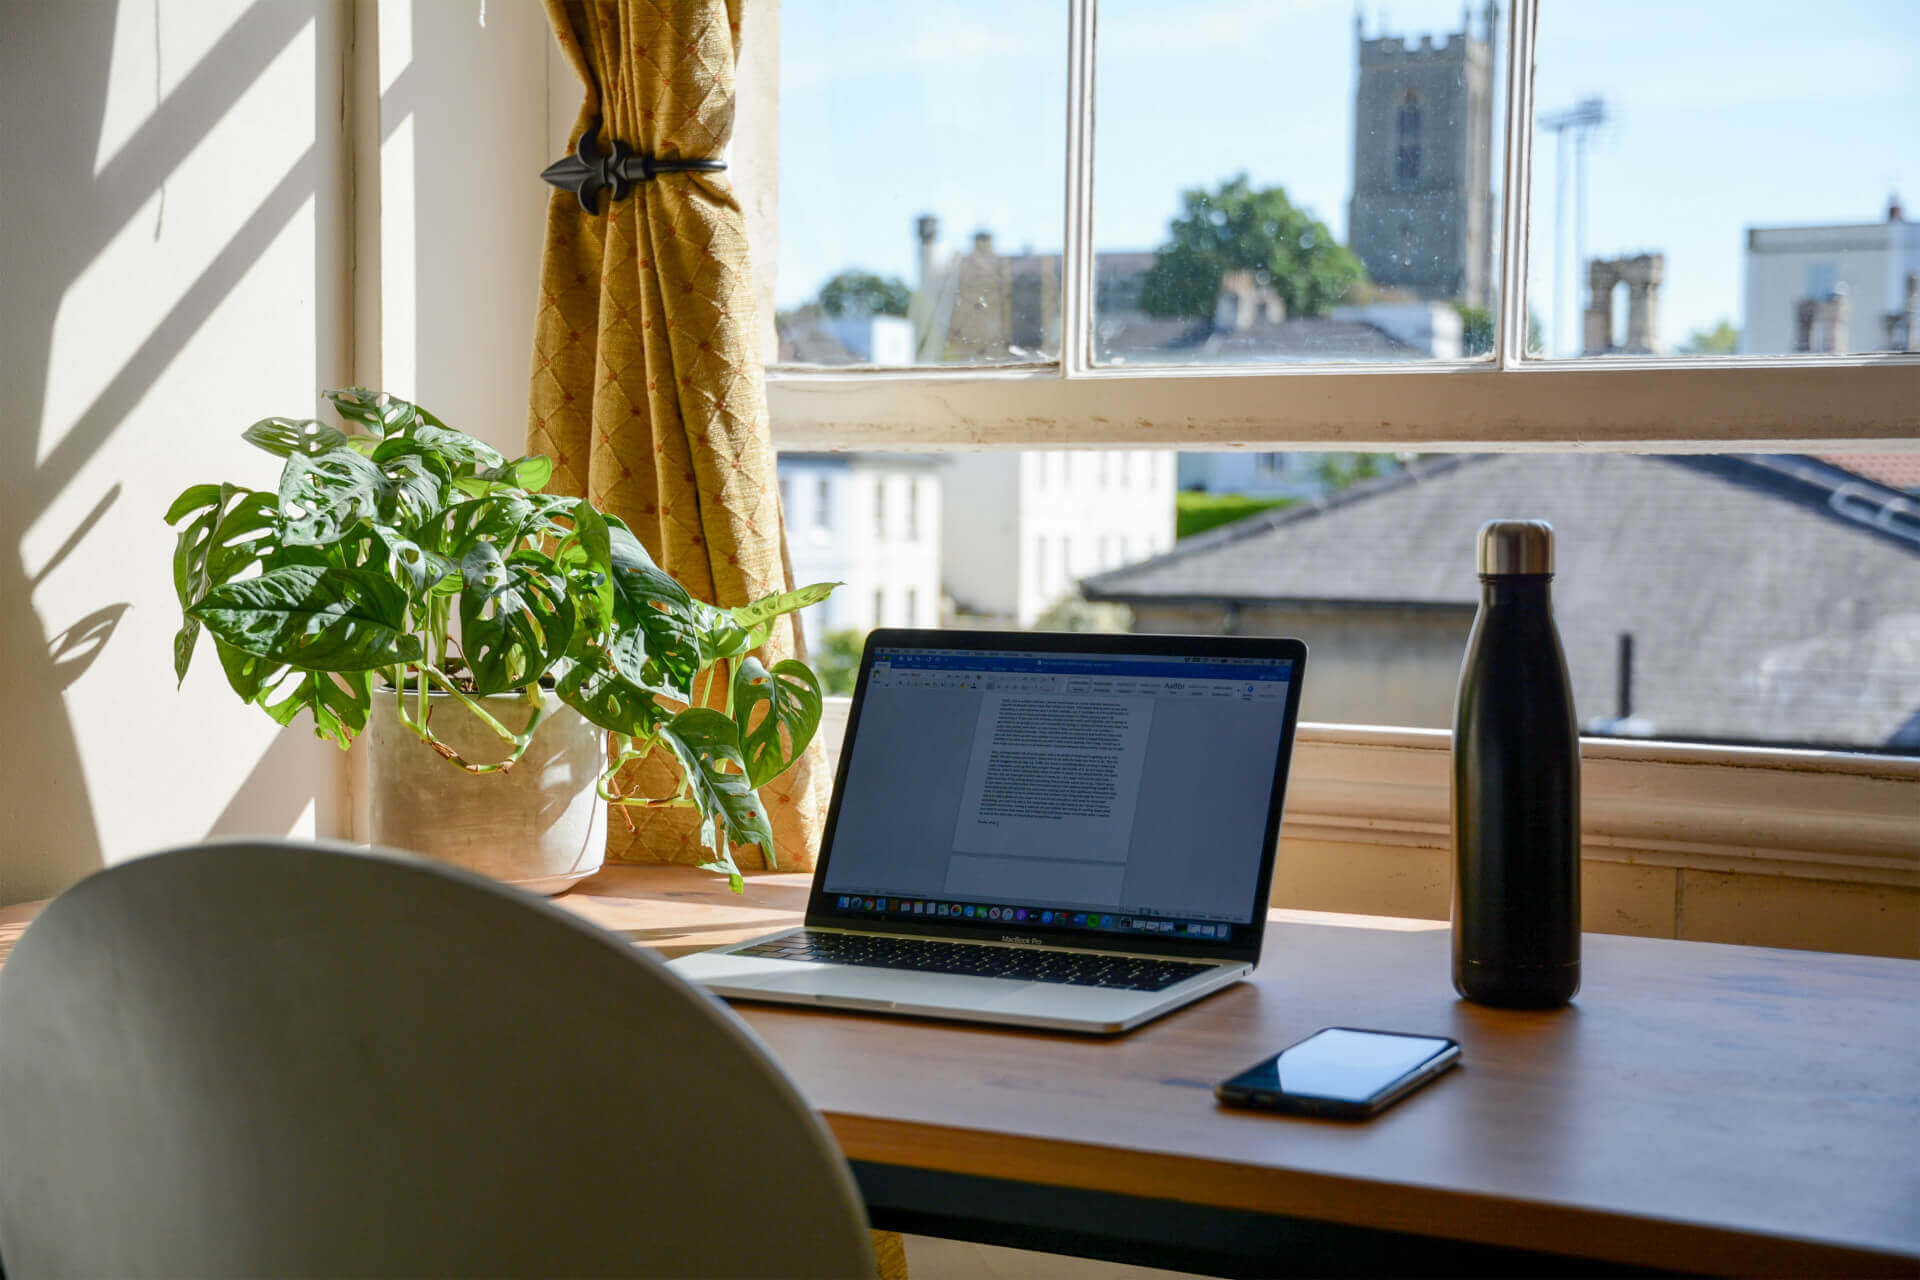 The most common mistakes in remote work